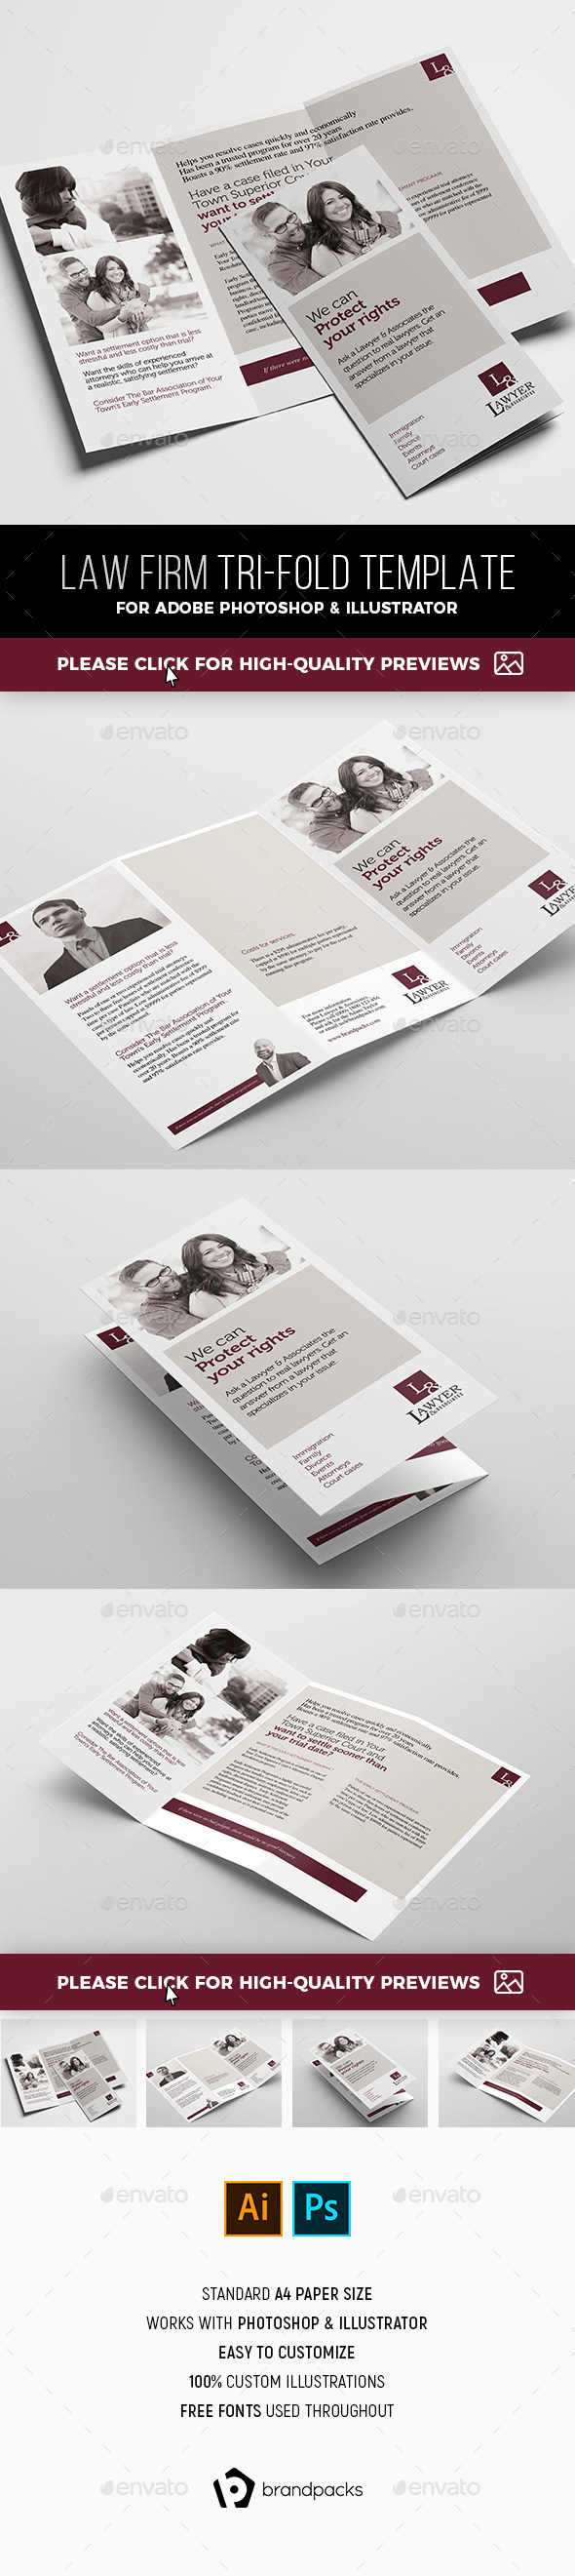 Law Firm Tri Fold Brochure Template By Brandpacks Graphicriver